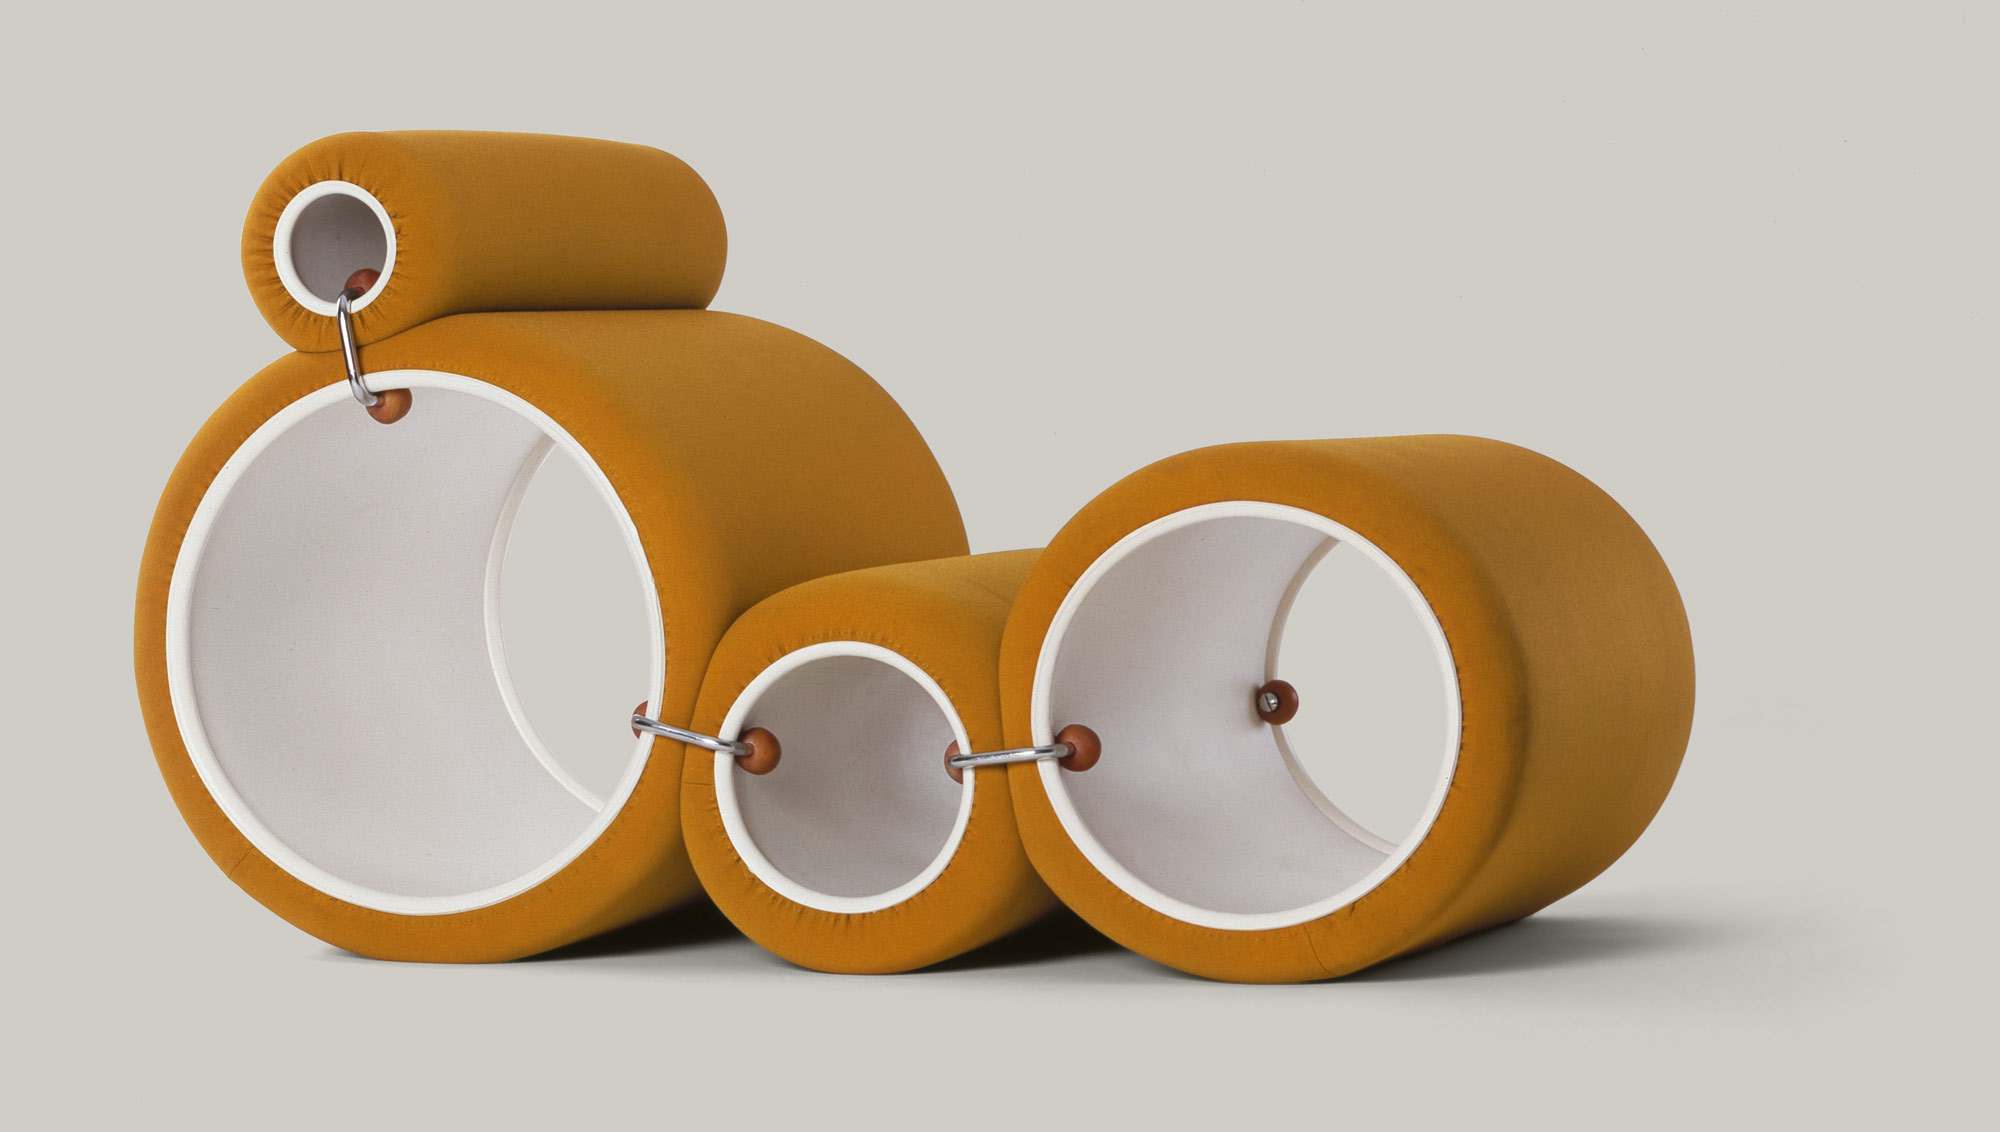 Tube Chair, Joe Colombo per Flexform, 1969-70.